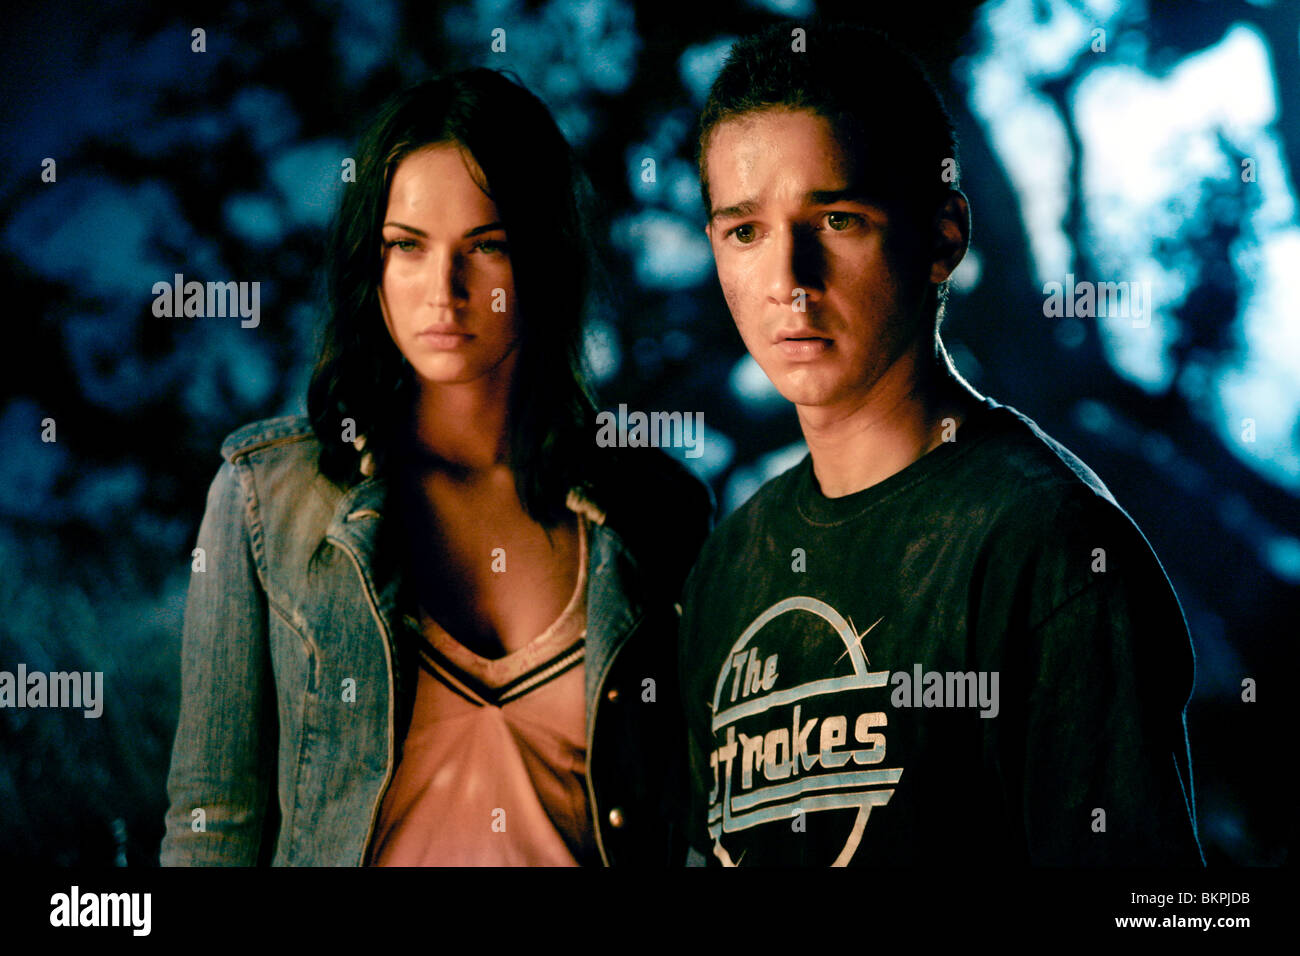 TRANSFORMERS (2007) MEGAN FOX, SHIA LABEOUF MICHAEL BAY (DIR) TRRS 001-08 MOVIESTORECOLLECTION LTD - Stock Image